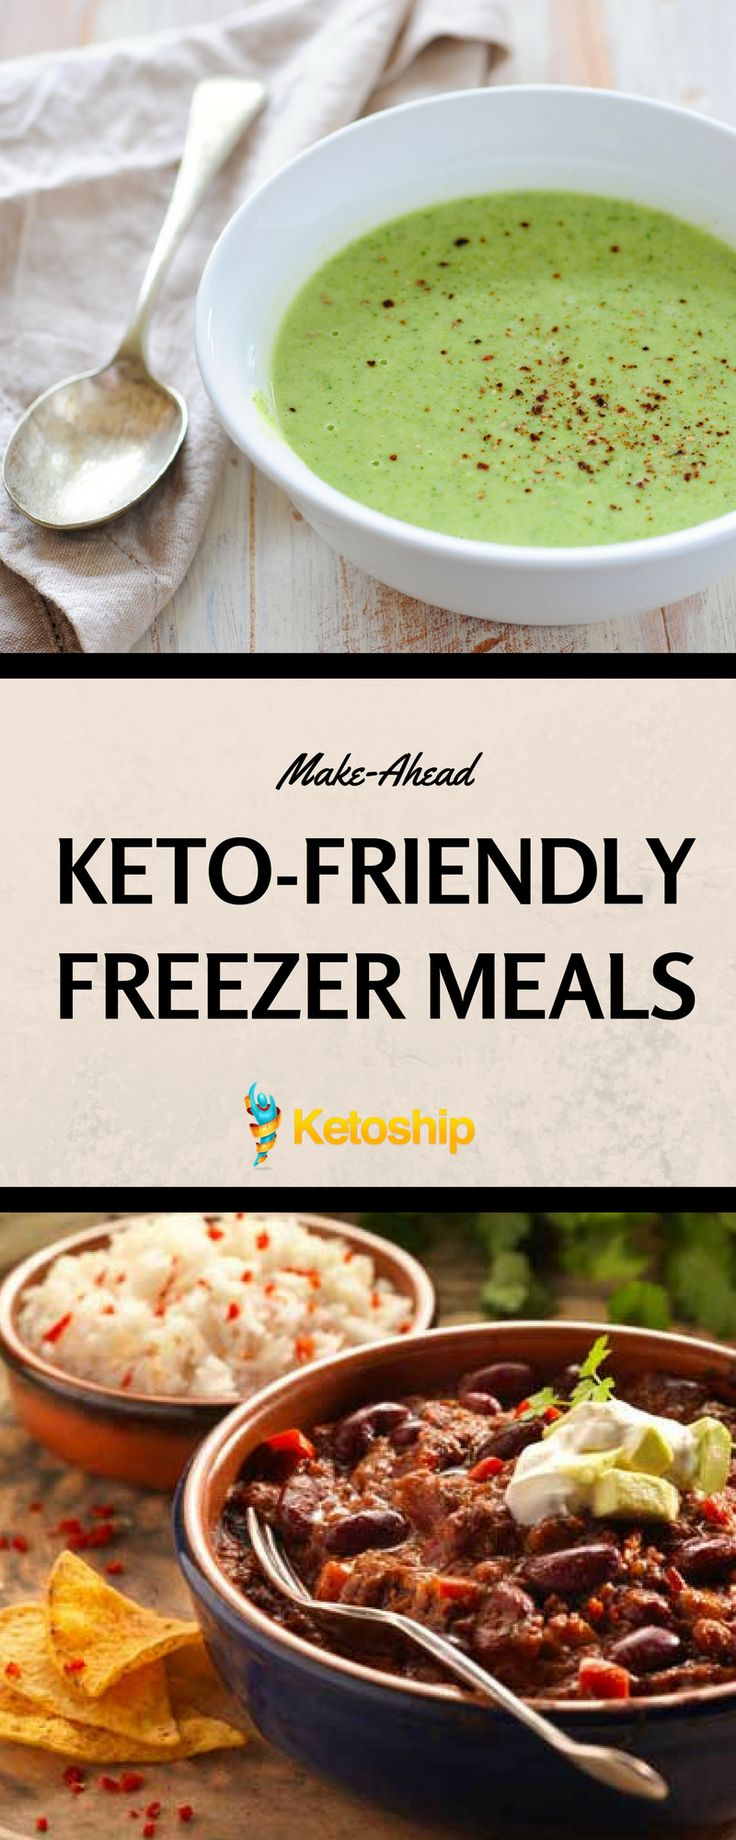 866 best The Carb Nite Solution & Keto & Paleo images on Pinterest | Clean eating meals, Cream ...